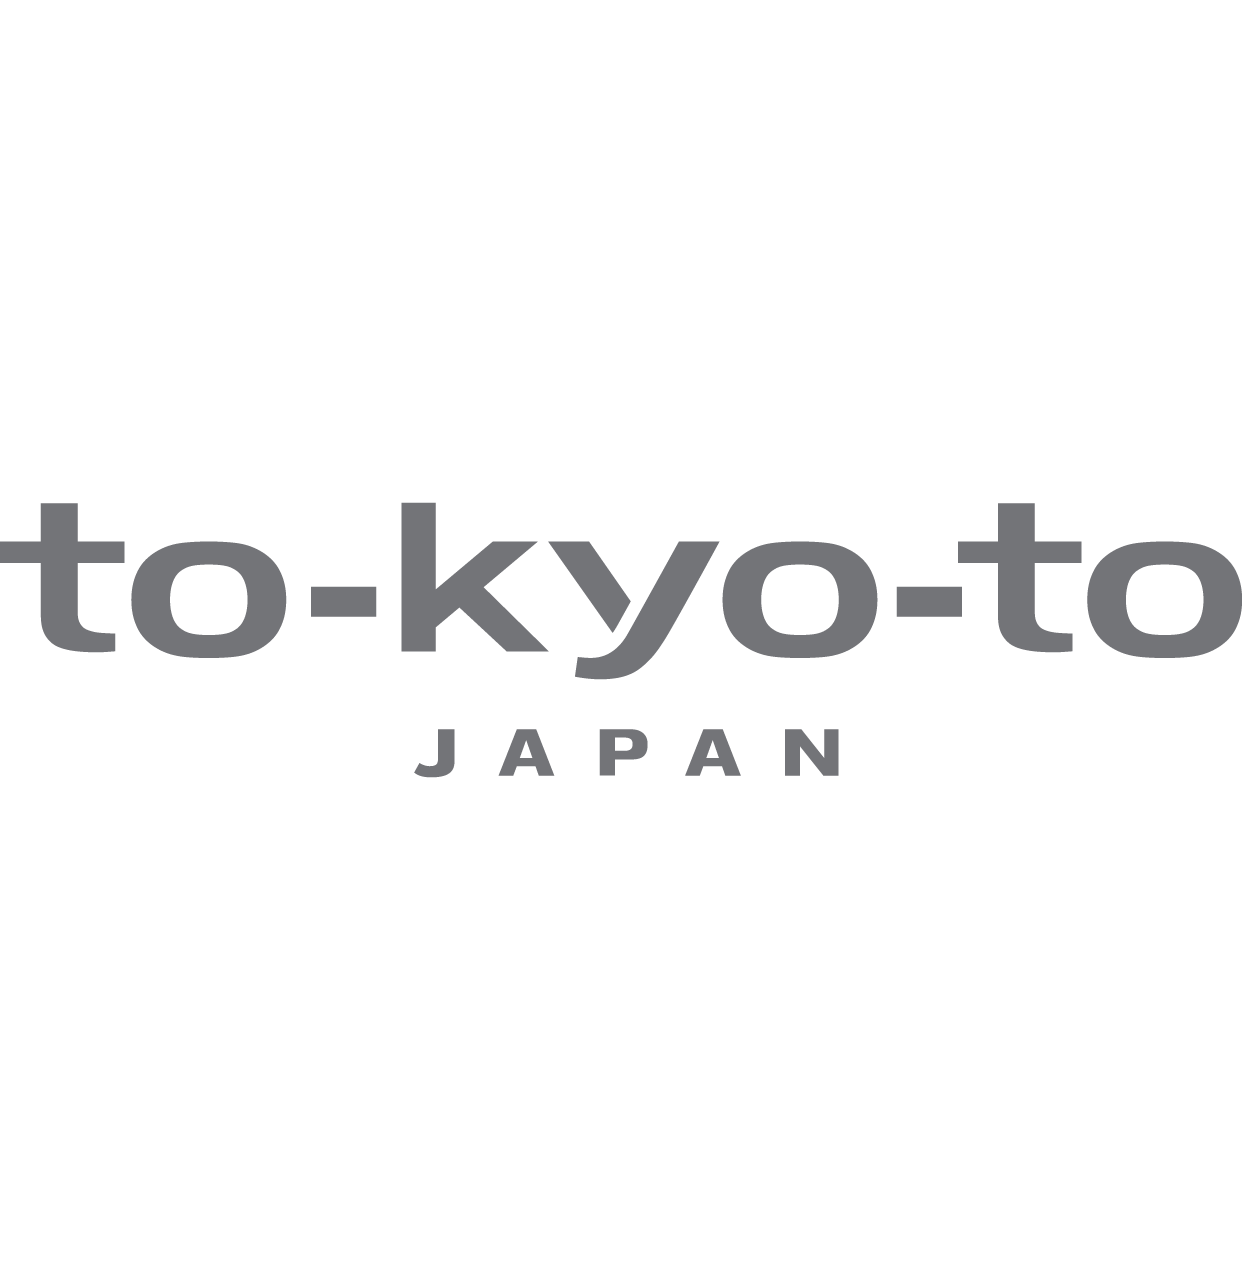 to-kyo-to